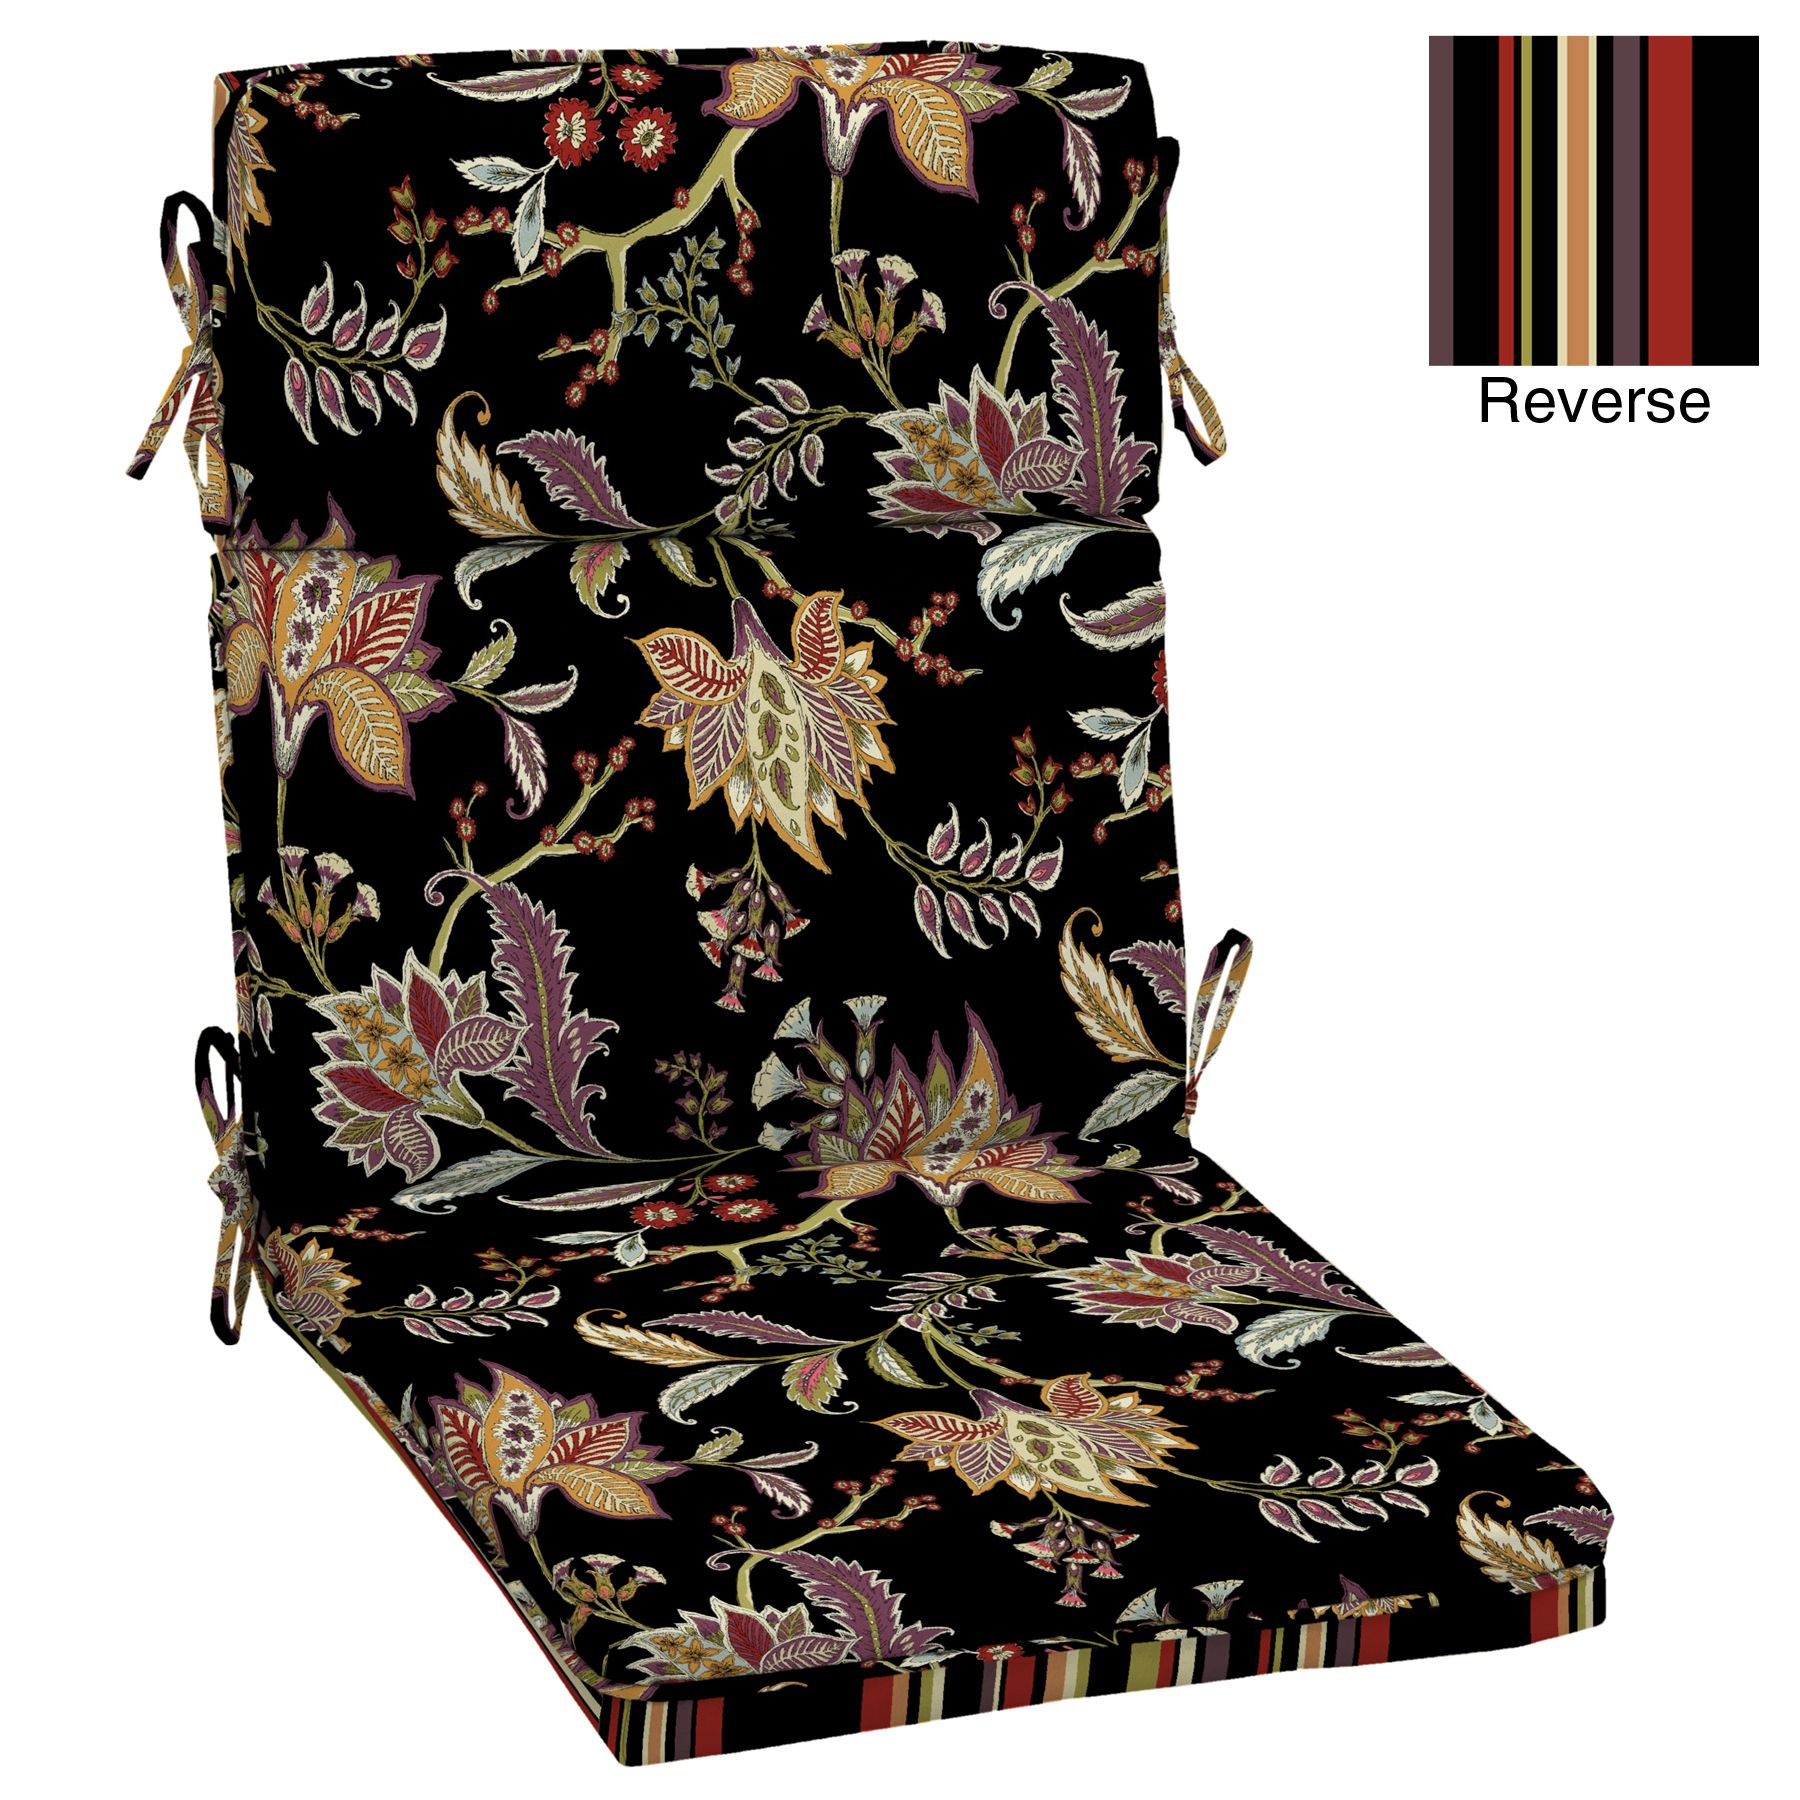 dining chair cushions kmart ivory covers canada jaclyn smith cushion bellflower